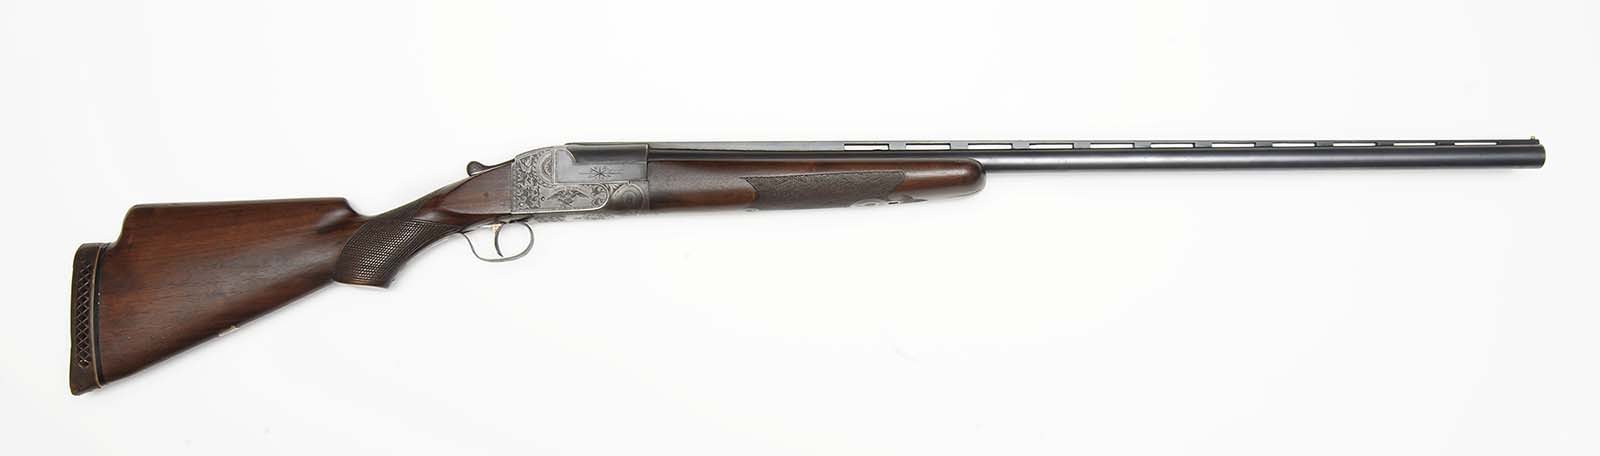 Ithaca Single Barrel Trap Gun, 12 gauge, Serial Number 264501, owned by Annie Oakley, stock was changed by a later owner. Gift of Donald Lawson In Honor and Memory of Joseph L. Box. 2008.10.1